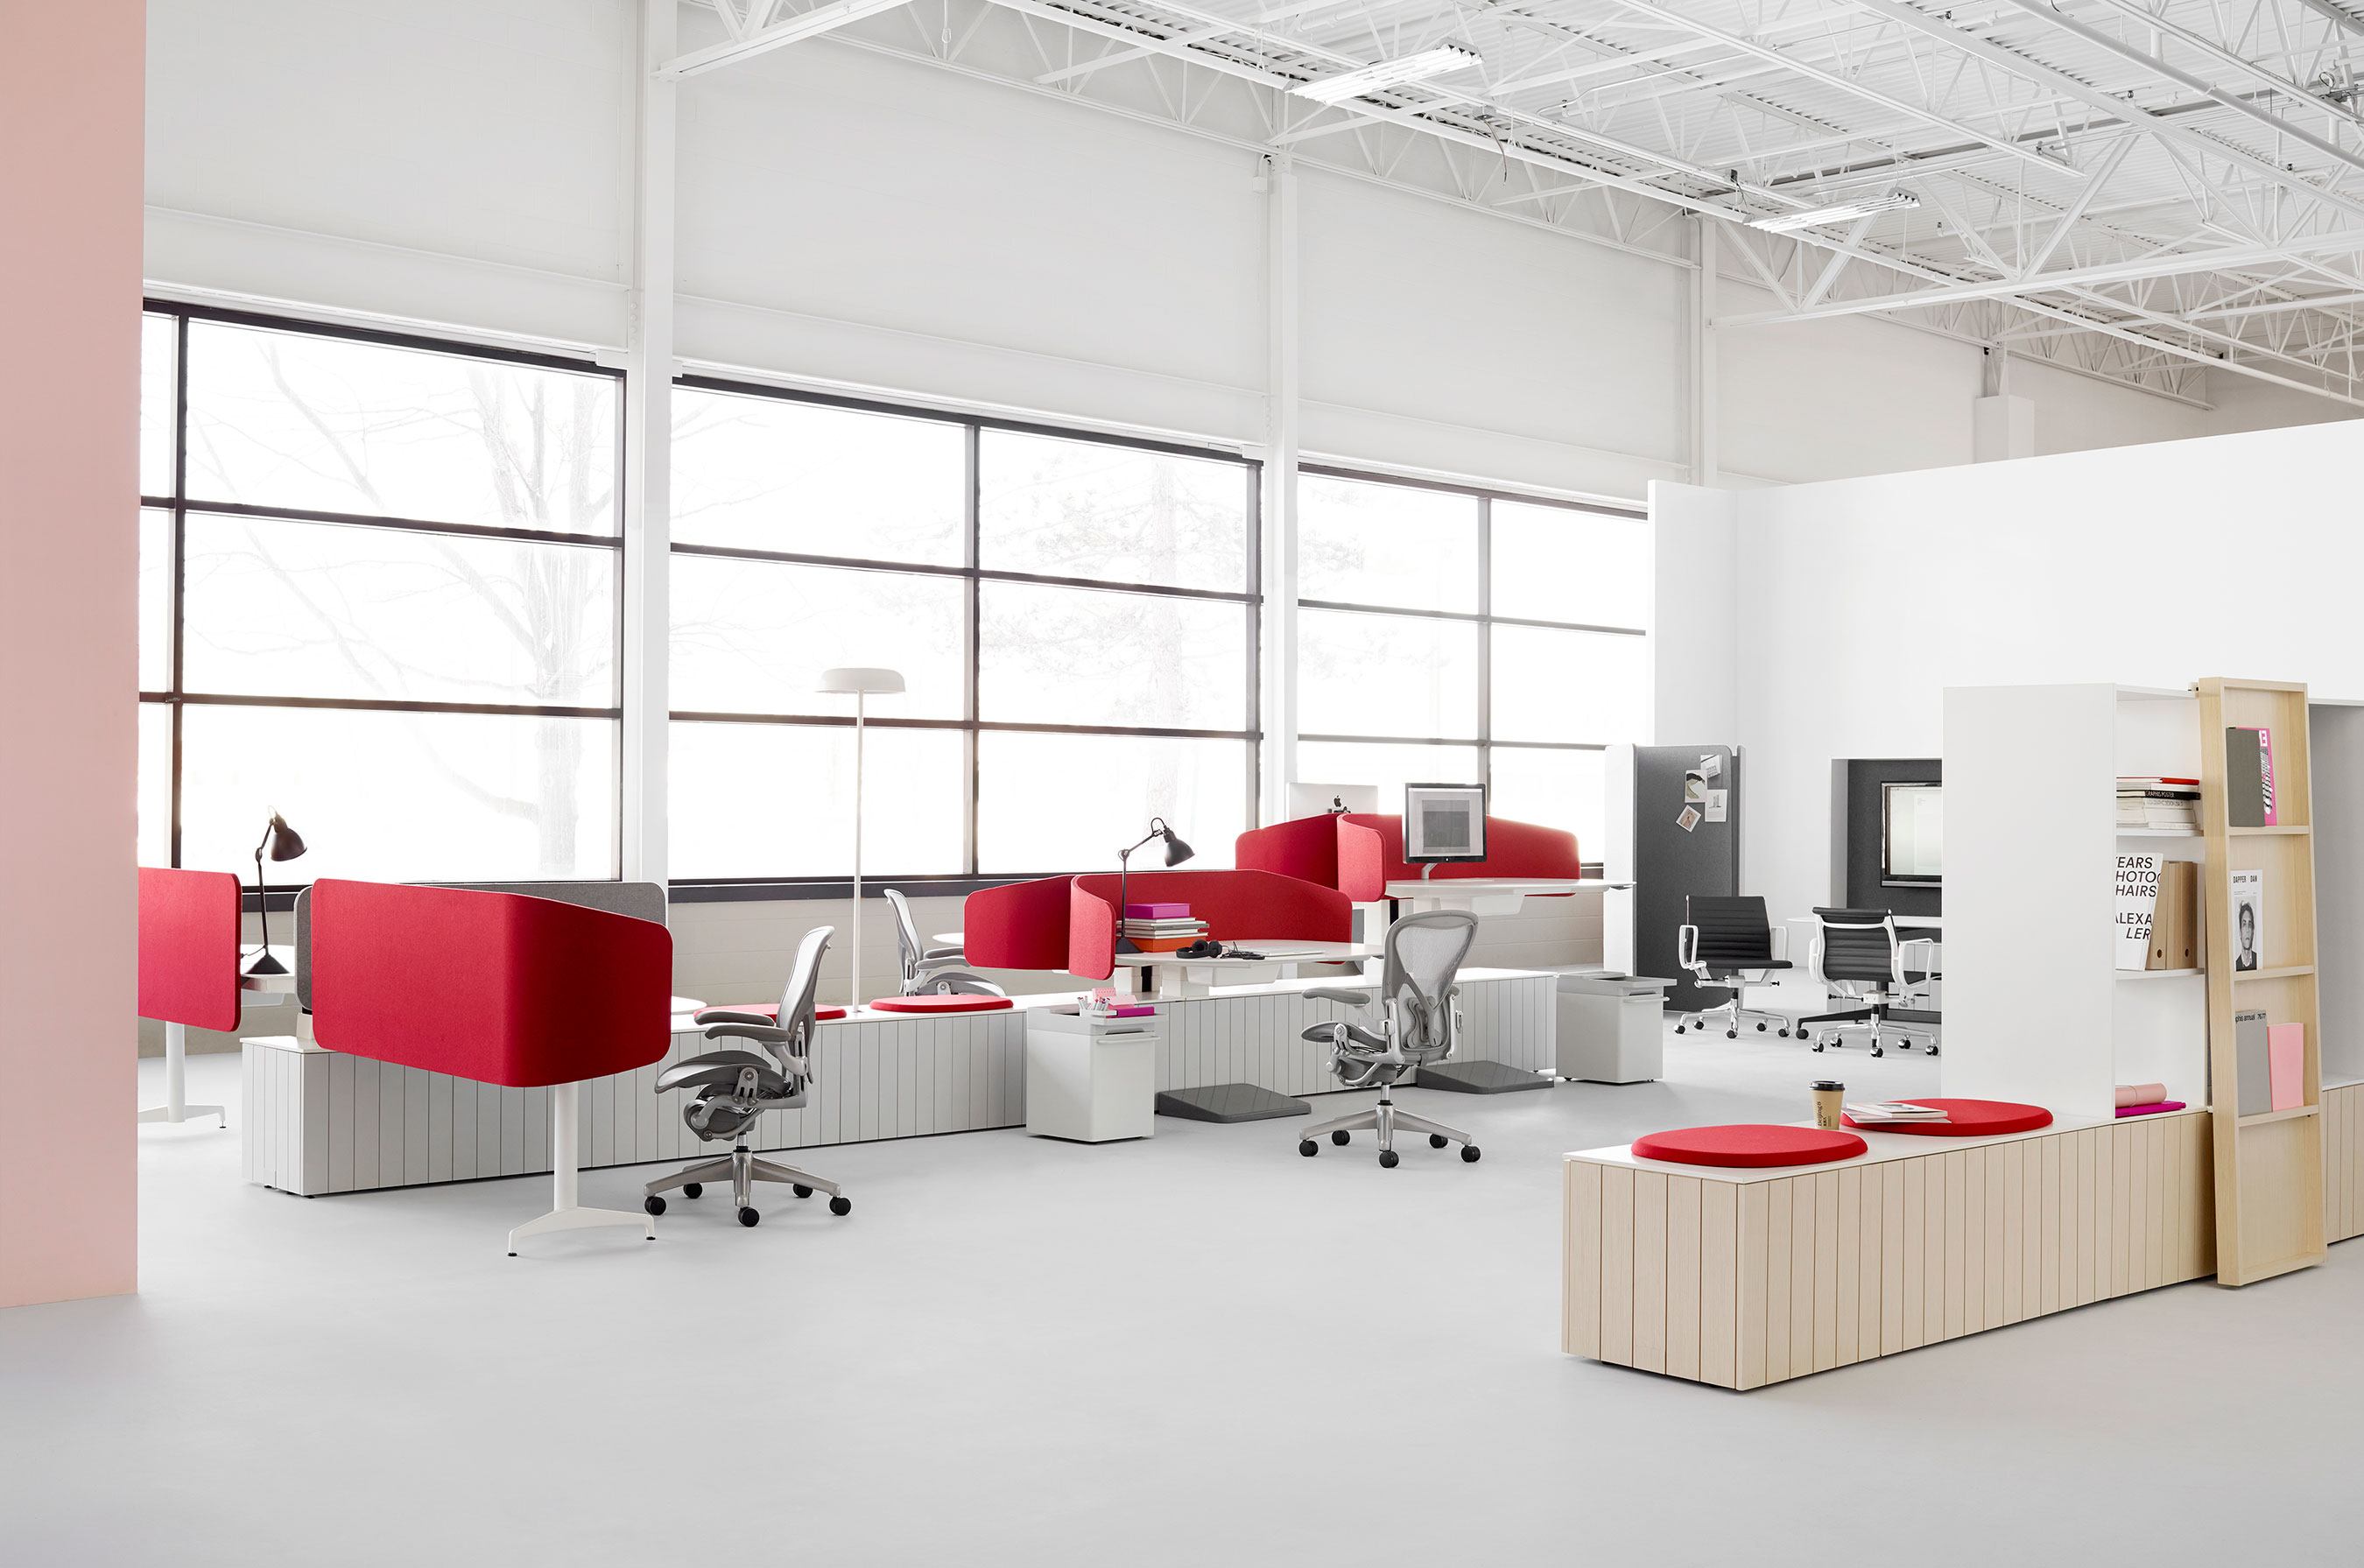 herman miller brings living office℠ to life - public